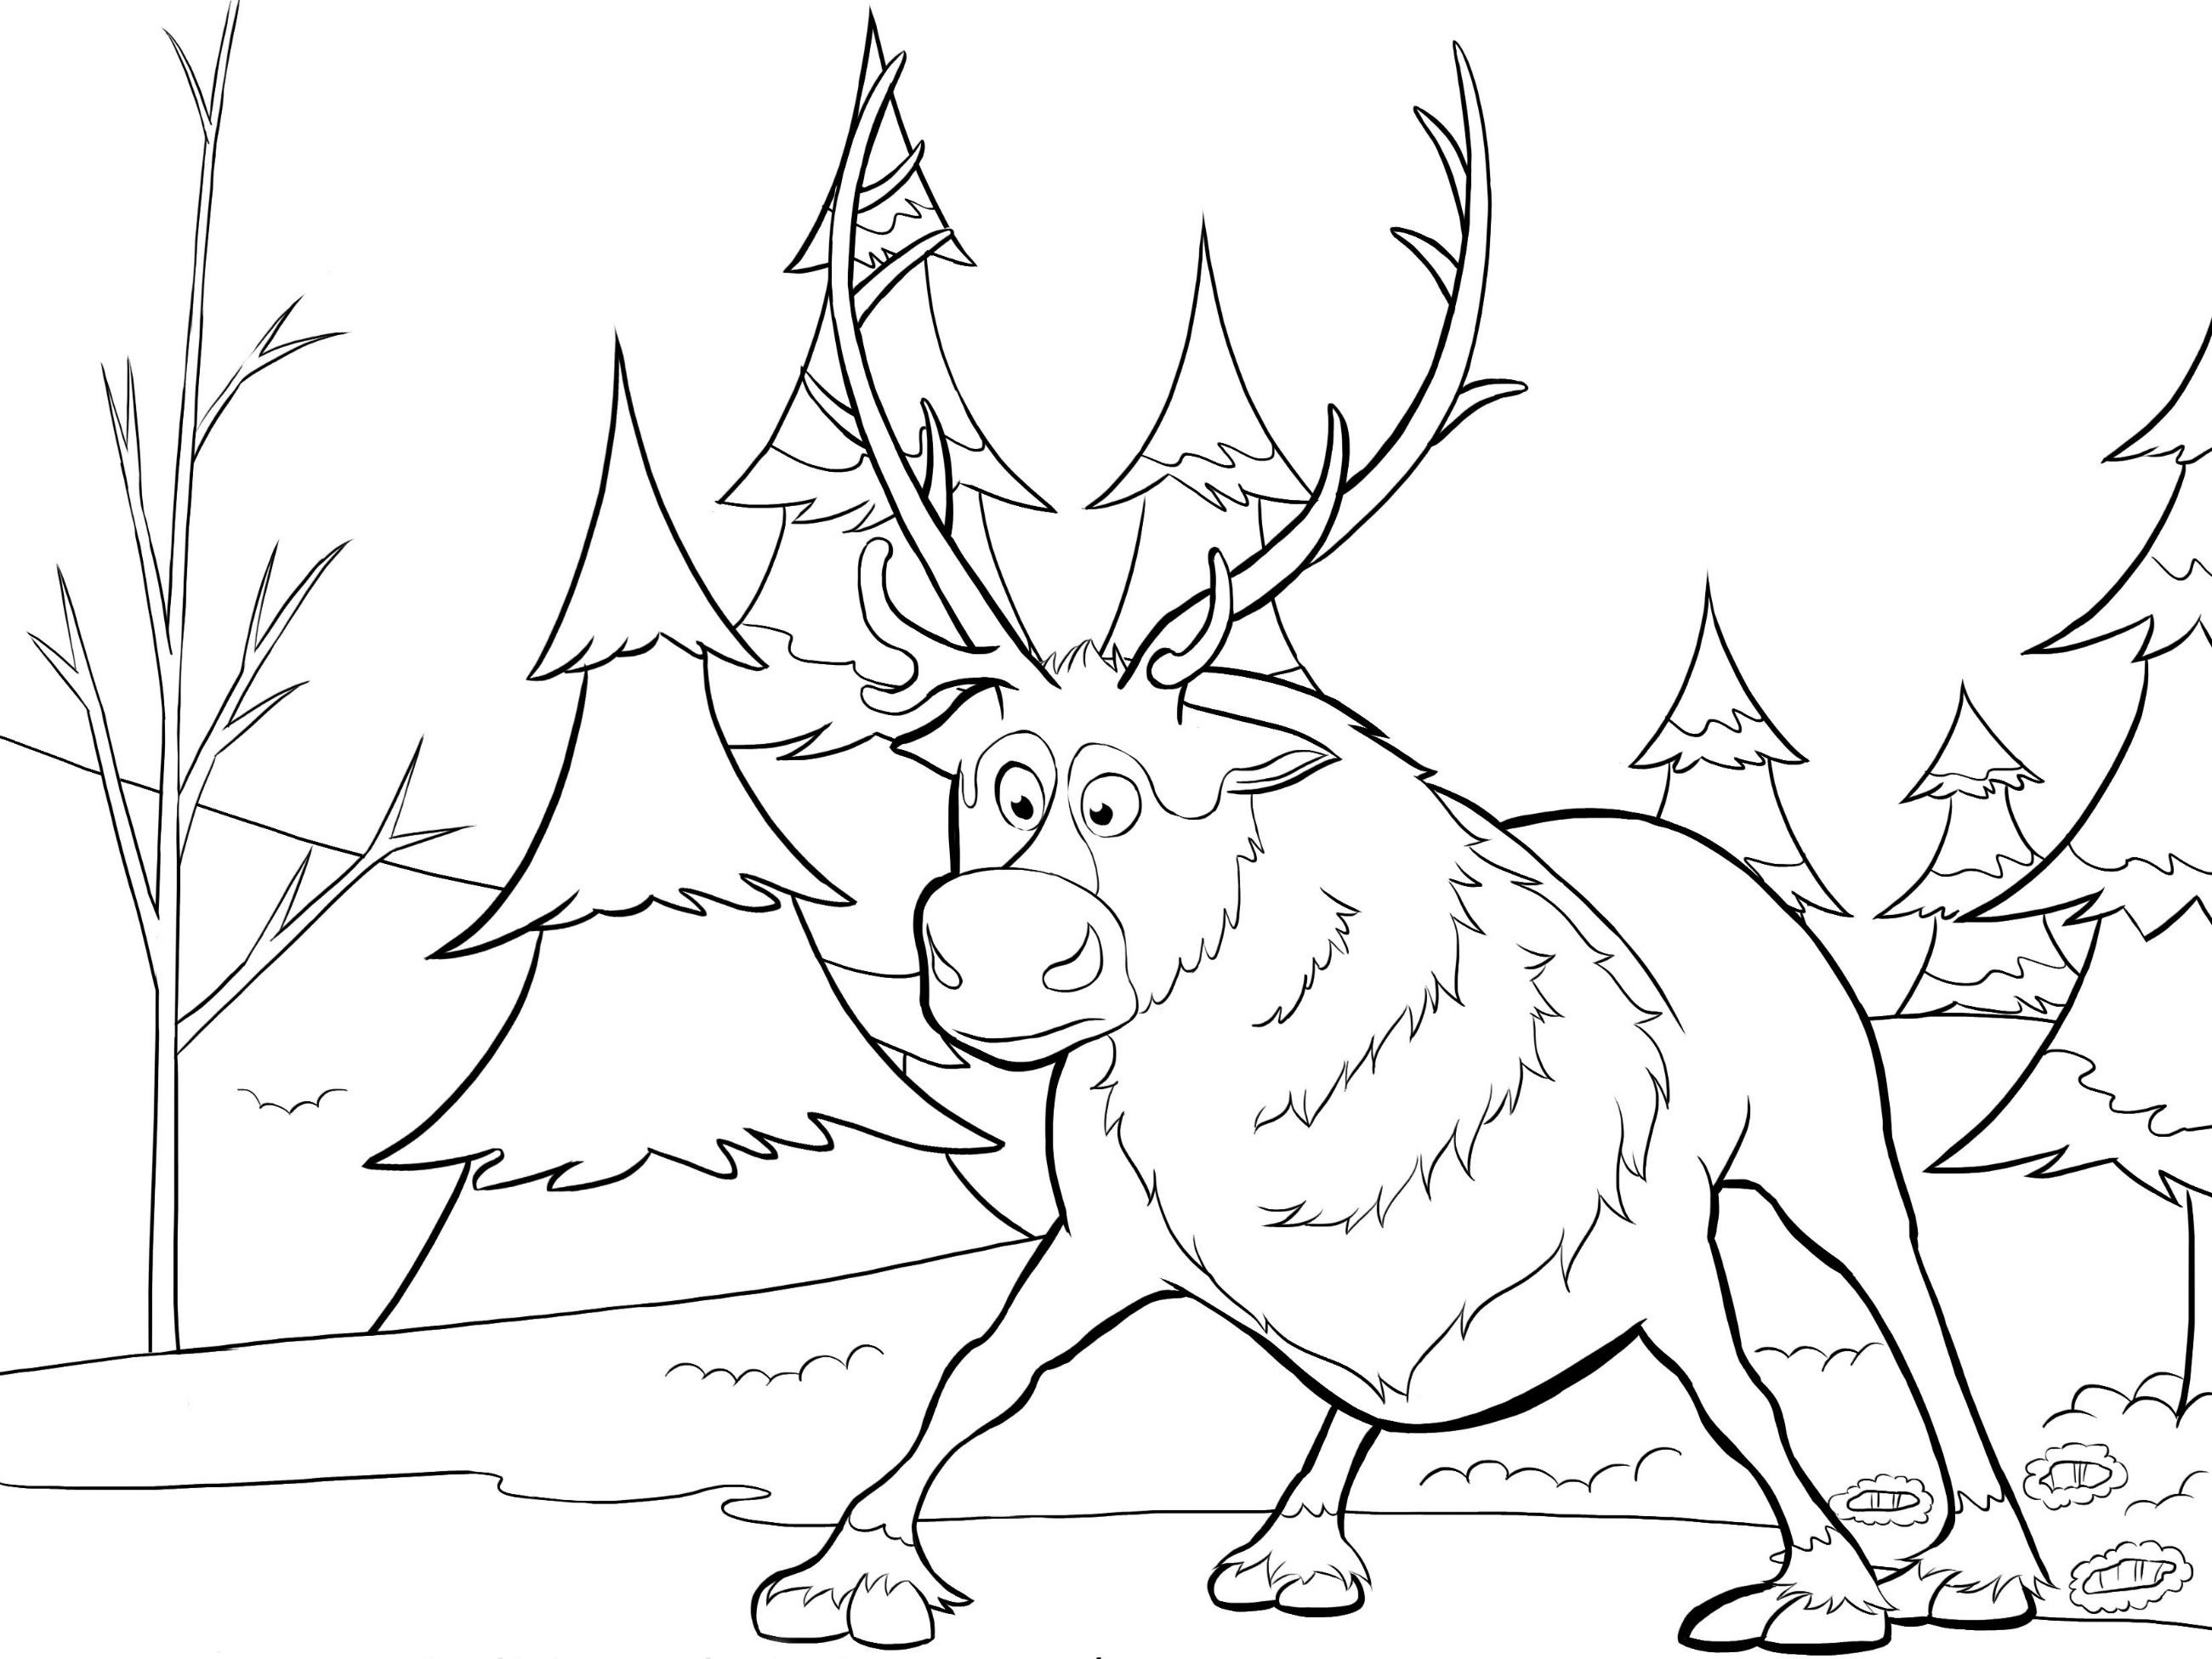 Sven From Frozen Coloring Page Patterns Pinterest Crafts